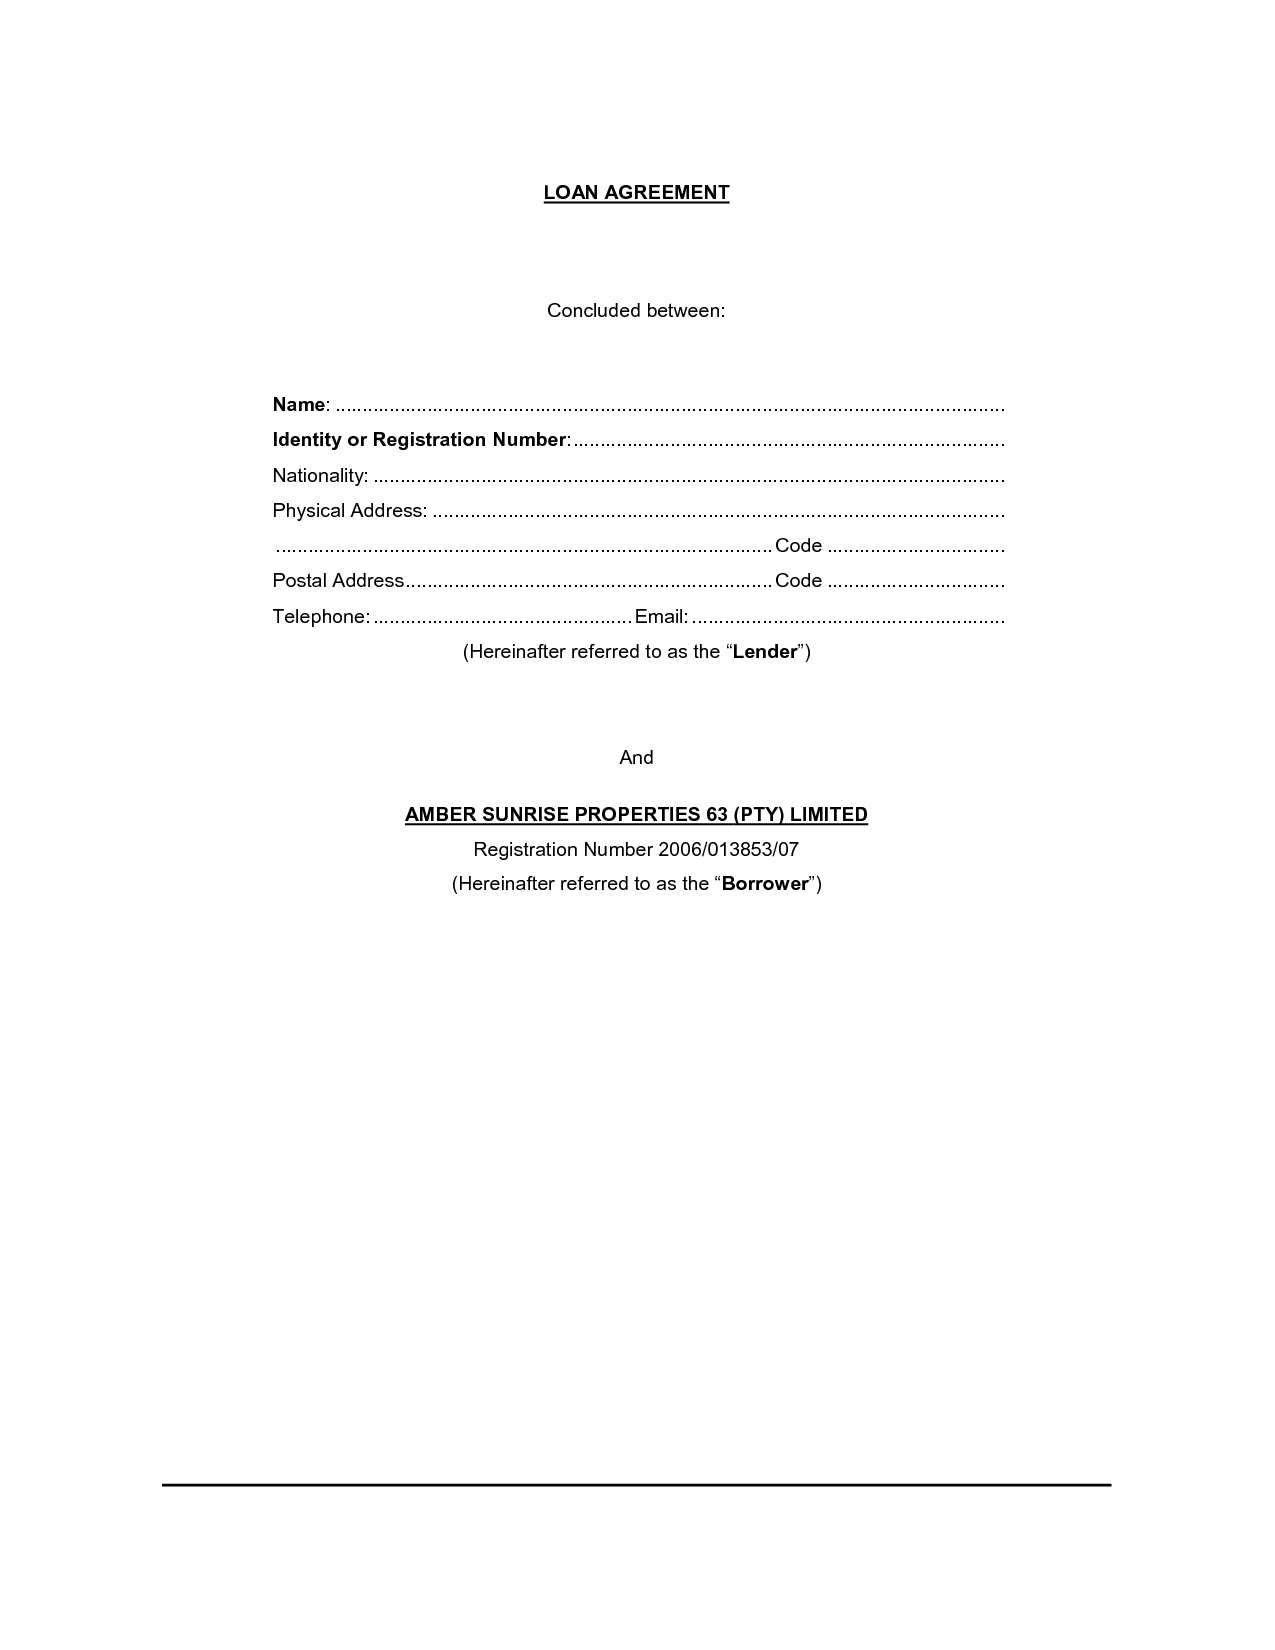 Loan Agreement Template Free Simple Loan Contract Legal